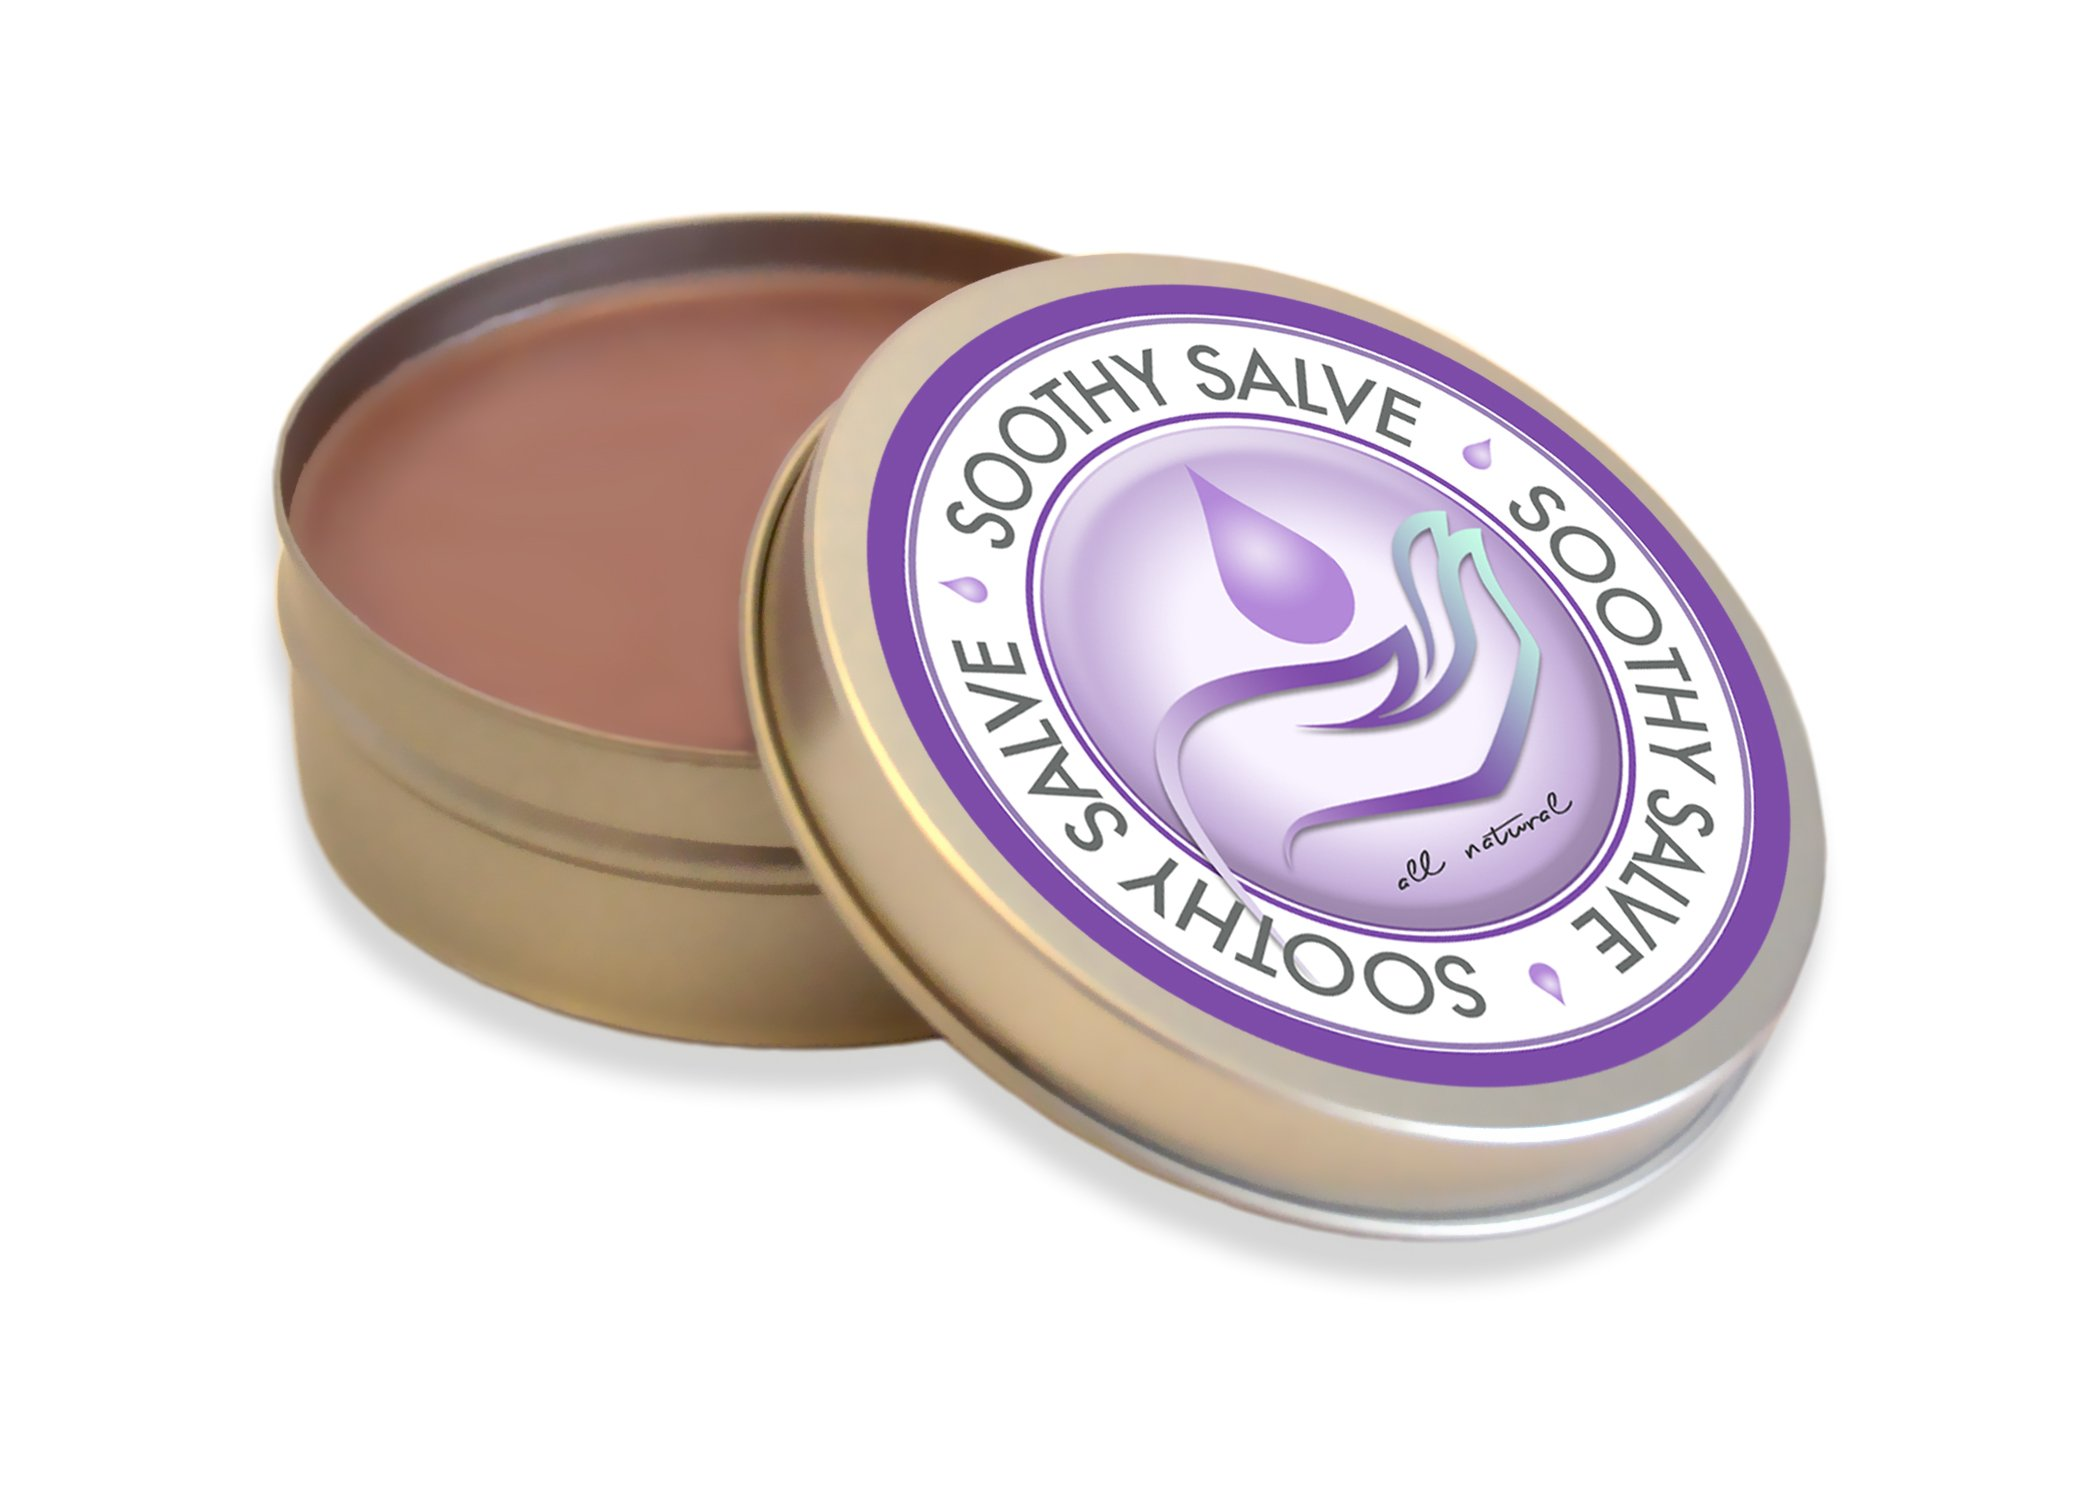 Soothy Salve, Made with Organic and All Natural Ingredients, Organic Coconut Oil and Pure Essential Oils. 4oz, Dry Skin